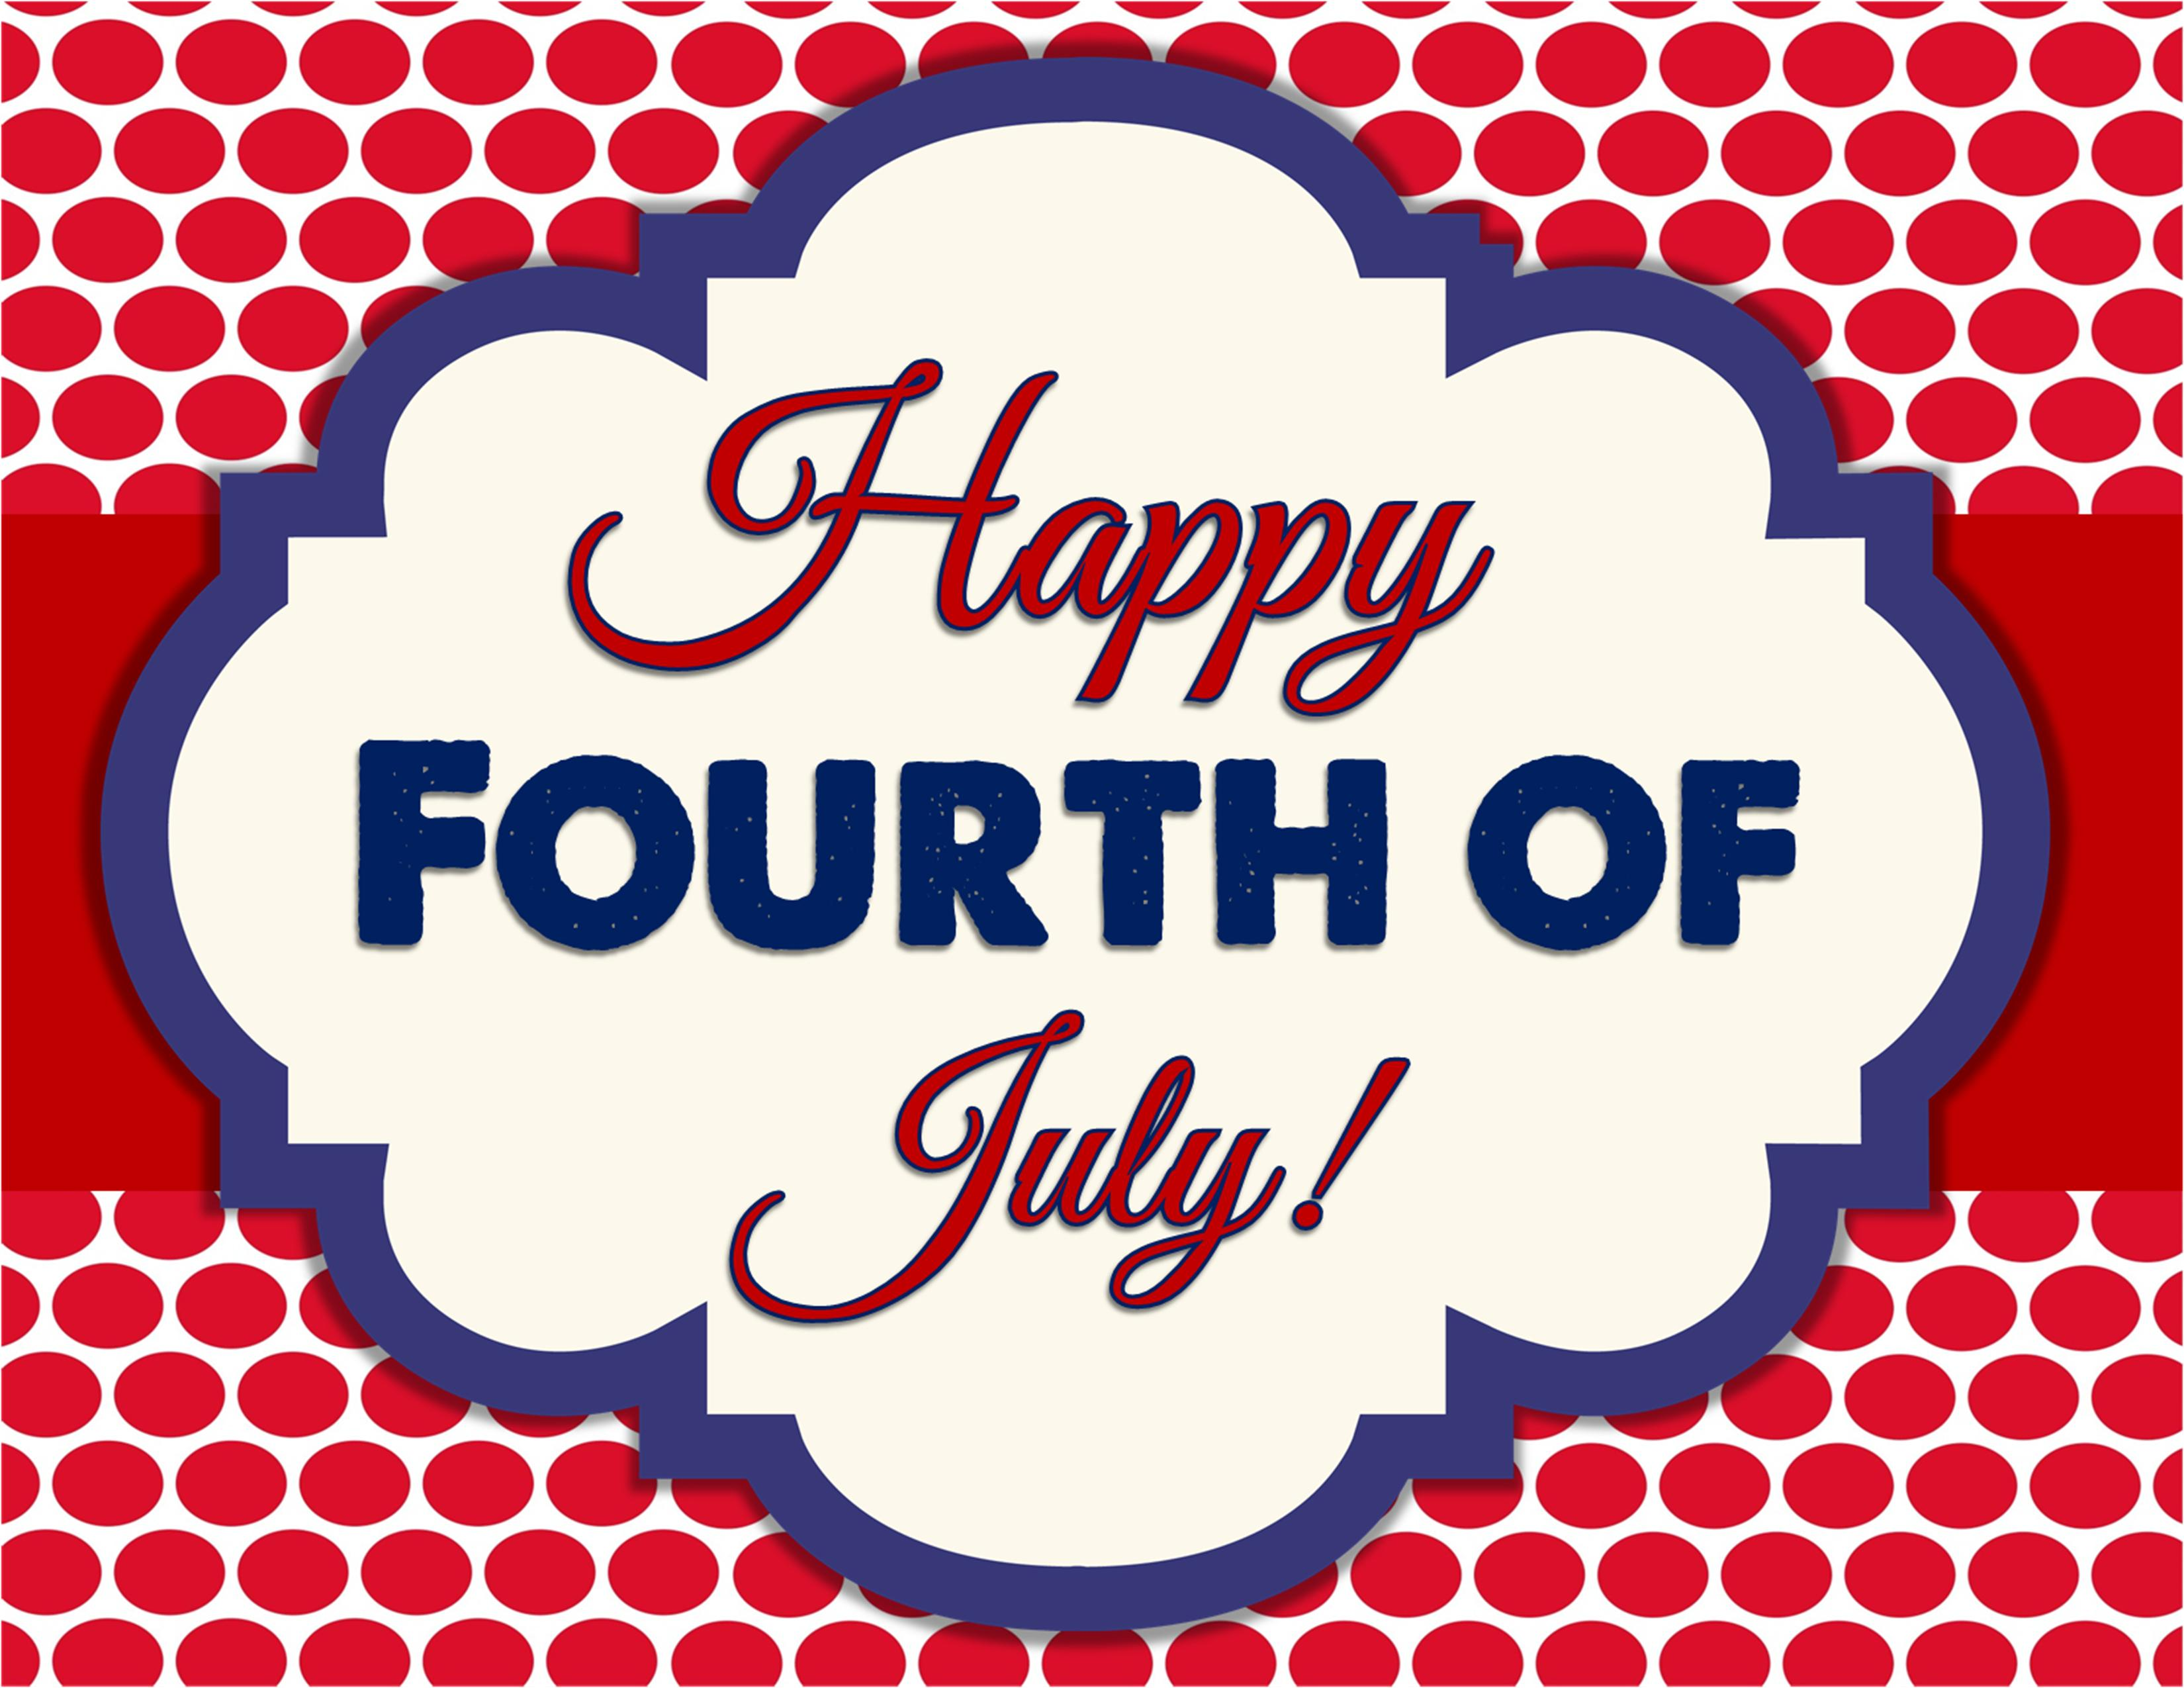 Happy 4th Of July Images Pictures Photos HD Wallpapers 2019 Download 3300x2550